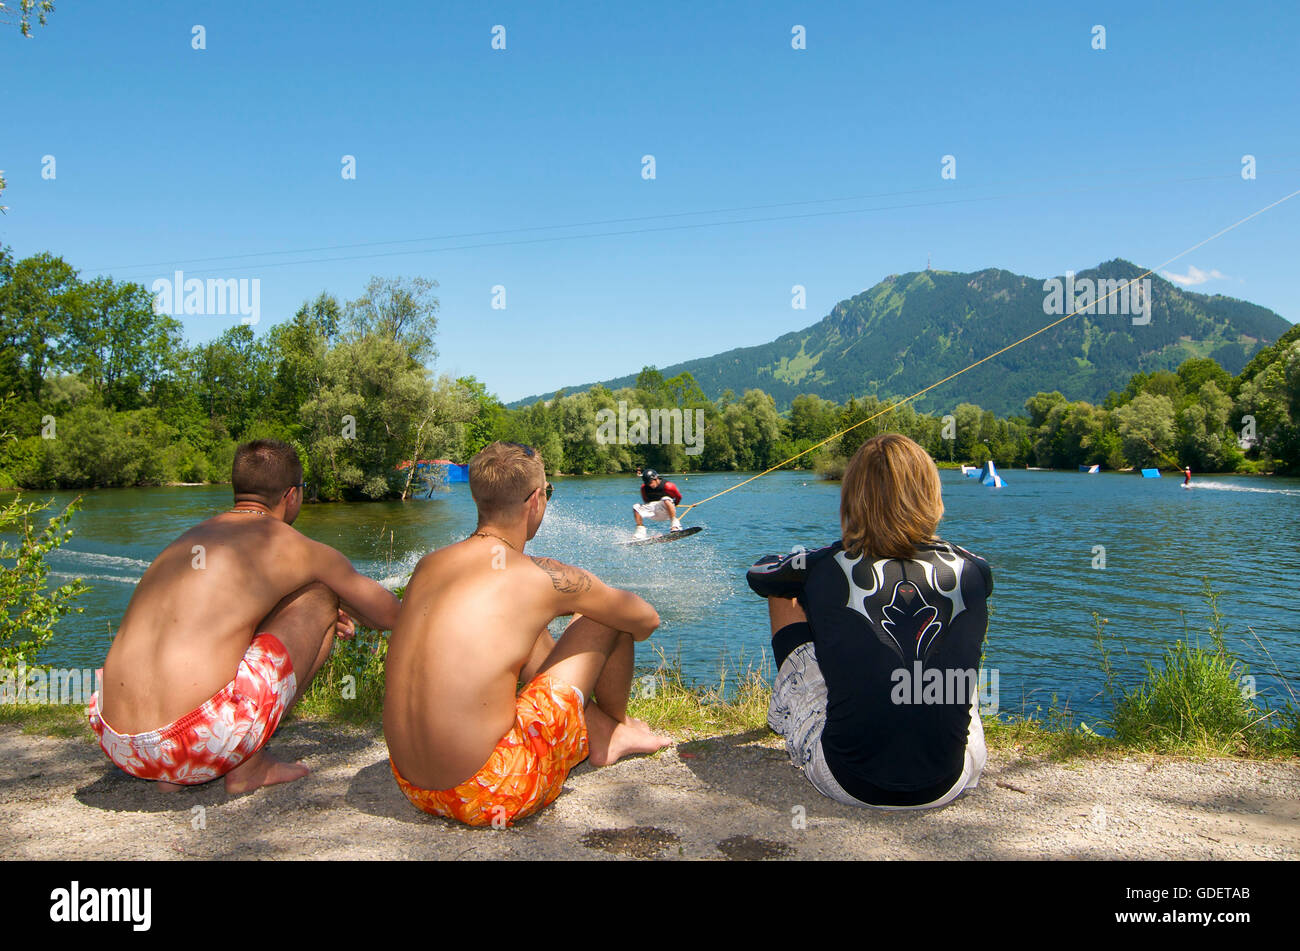 Wakeboarding in Immenstadt, Allgaeu, Bavaria, Germany - Stock Image